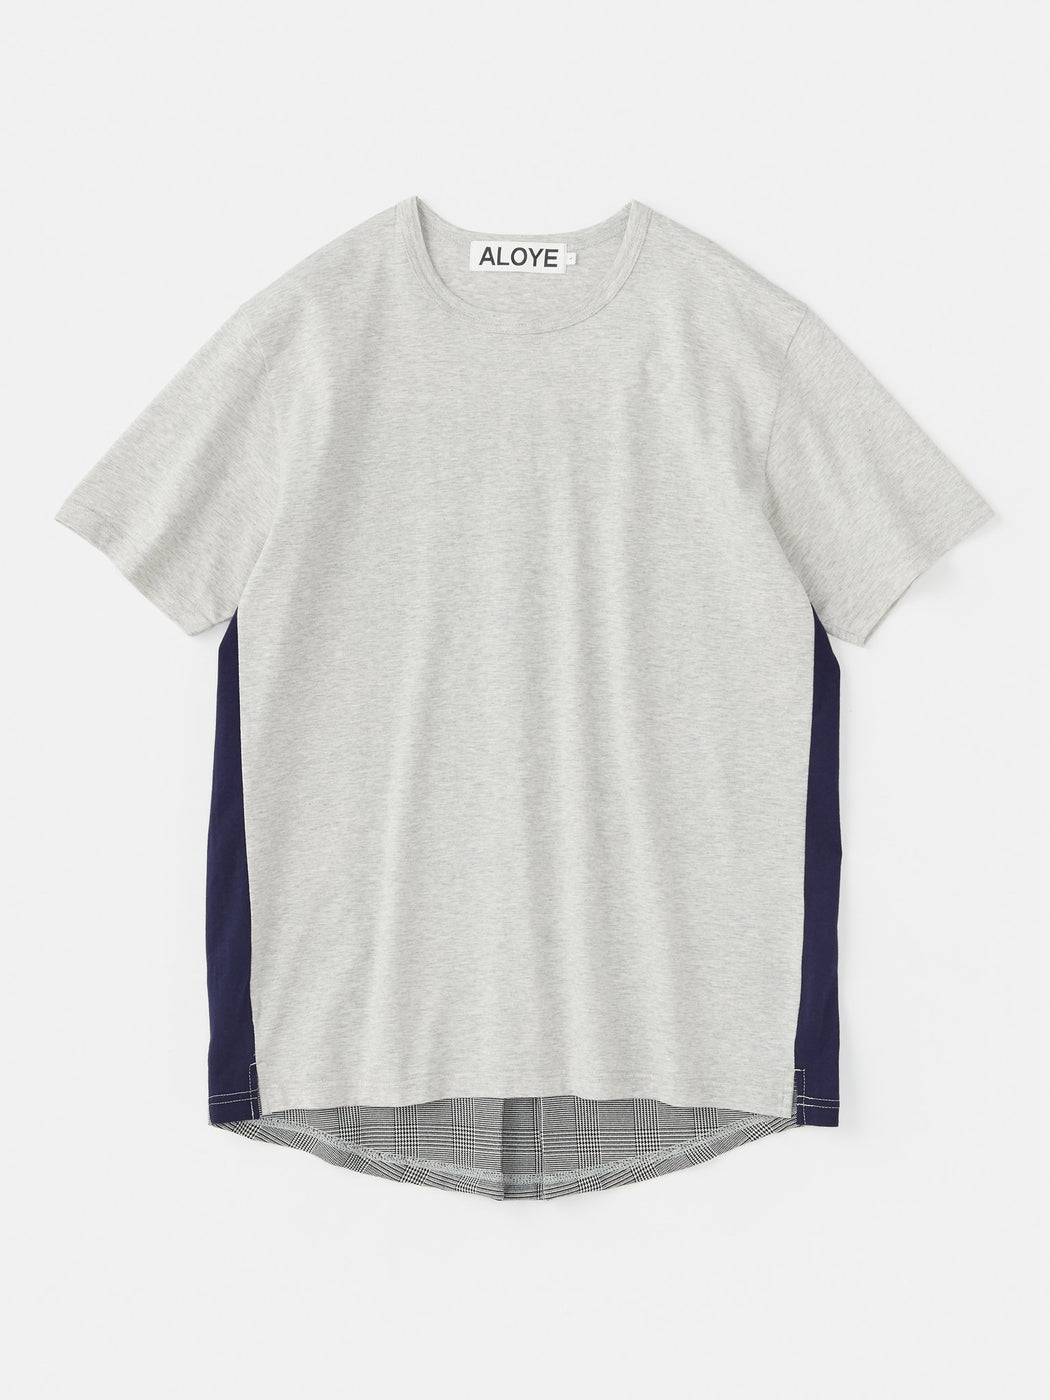 ALOYE Shirt Fabrics Short Sleeve T-shirt Heather Gray-Glen Plaid